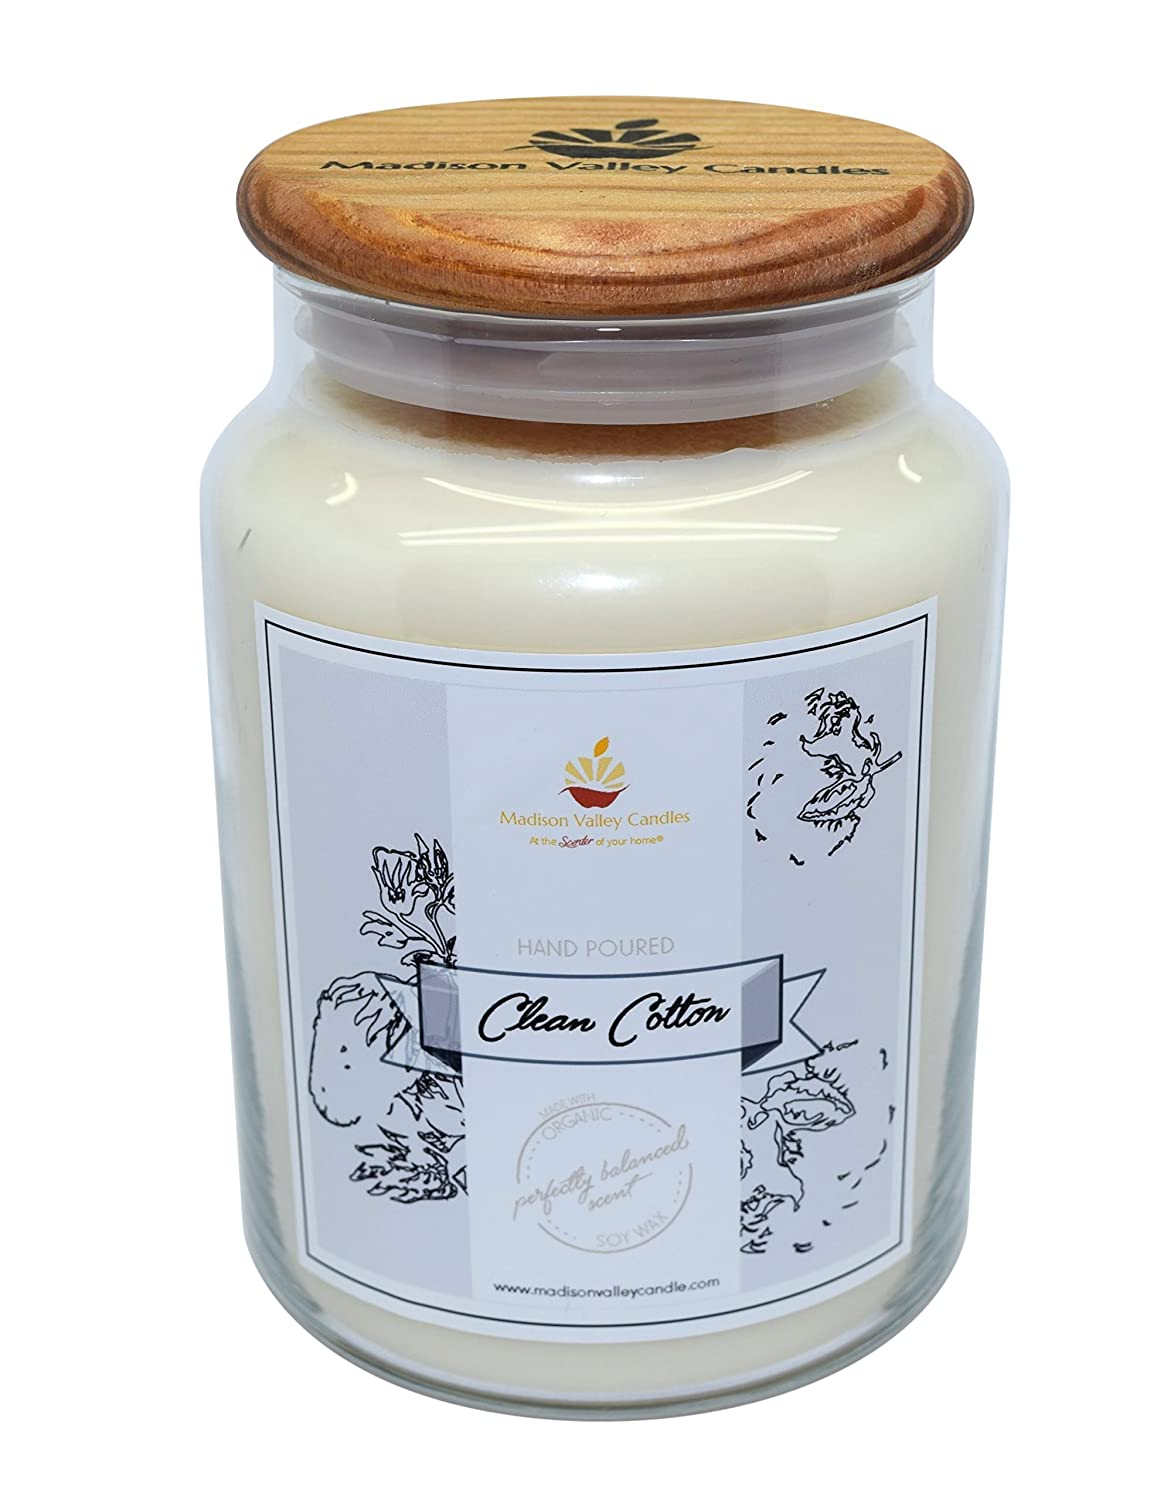 Strong Scented Clean Cotton Soy Candle 26oz By Madison Valley Soy Candle Company